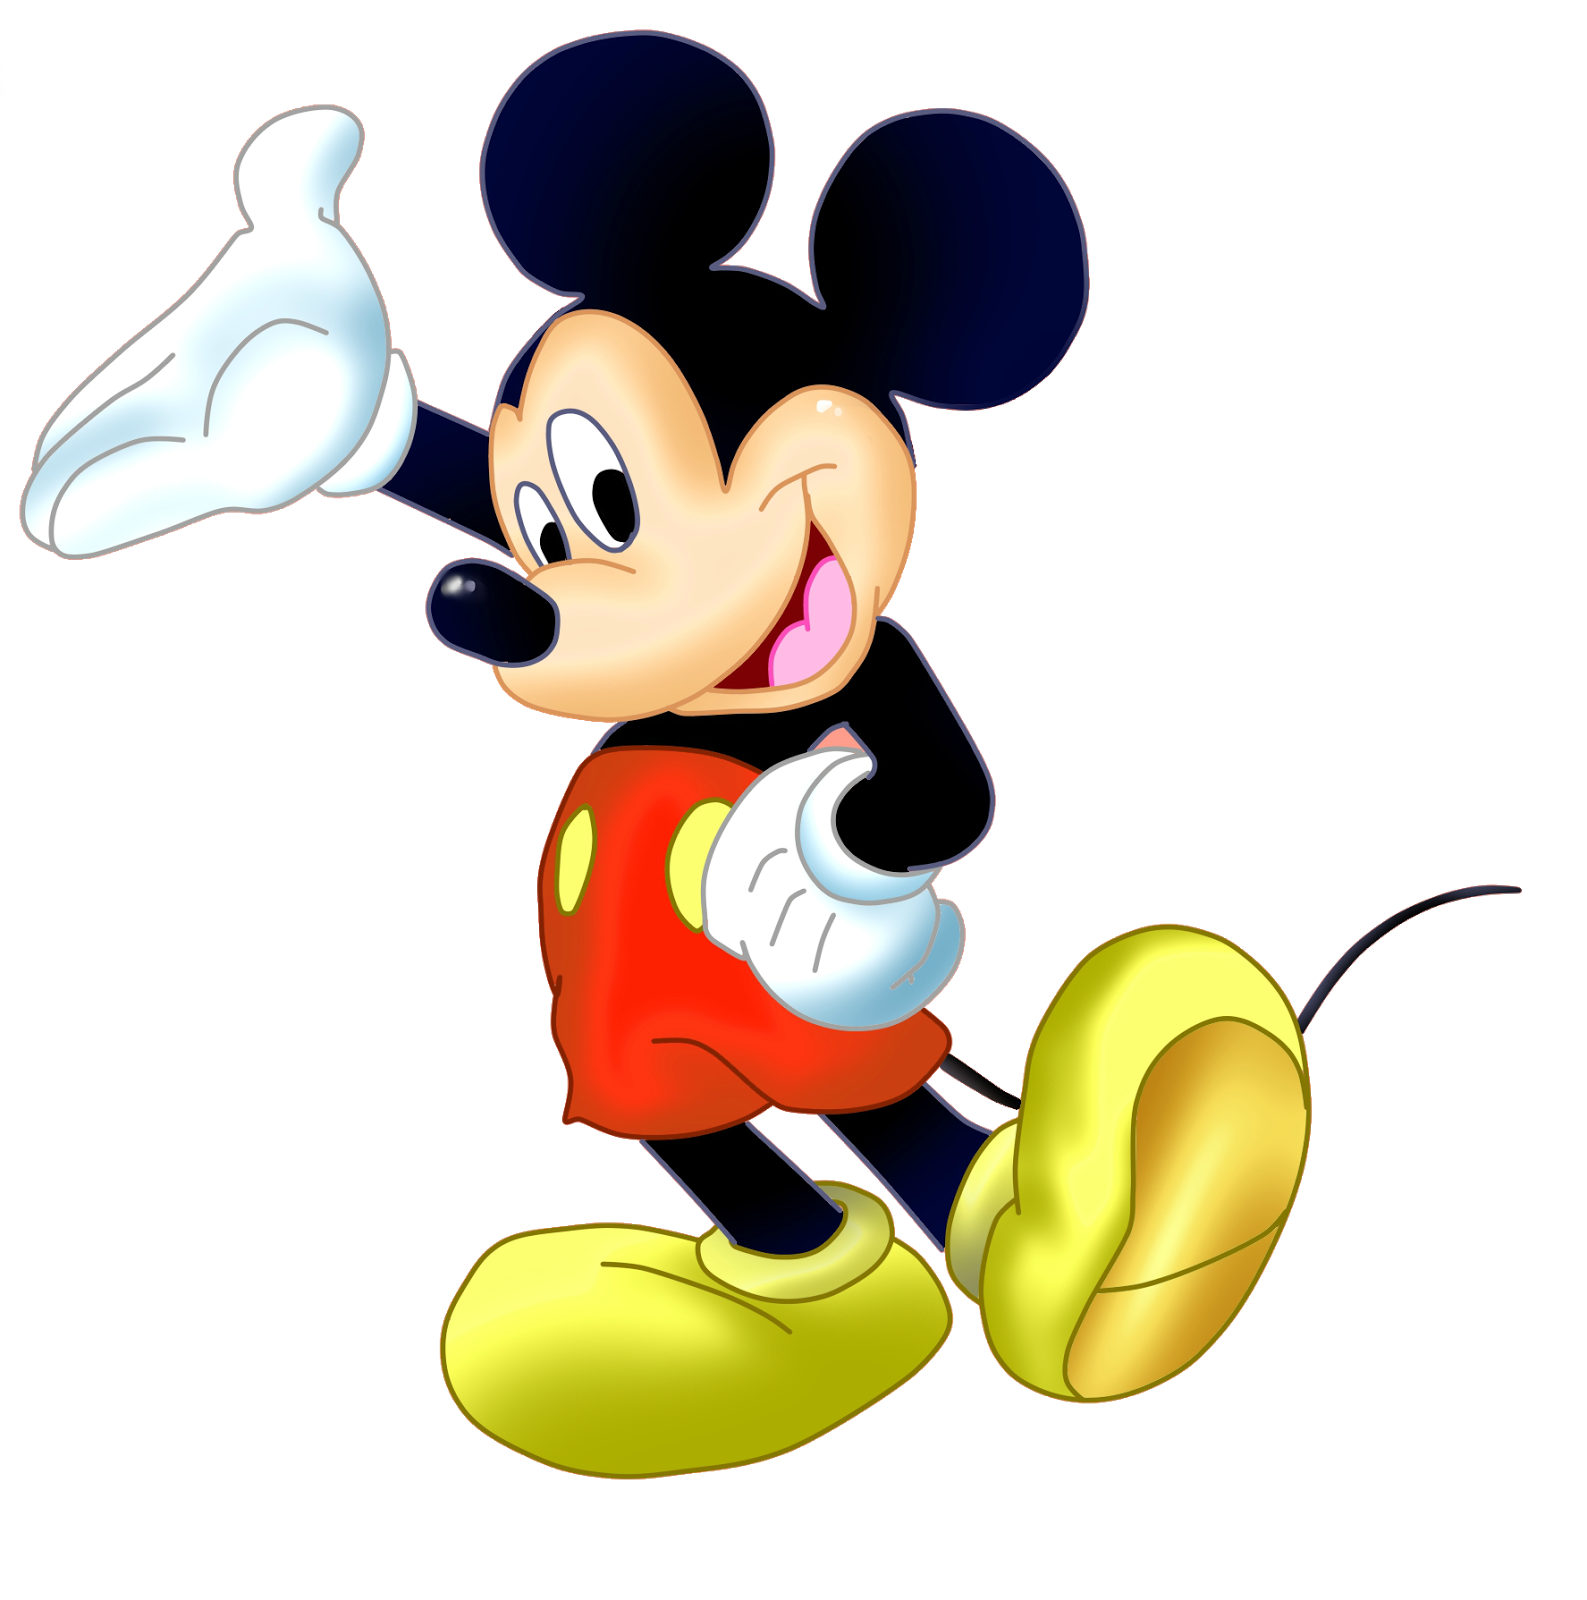 PNG Disney Characters - 144692